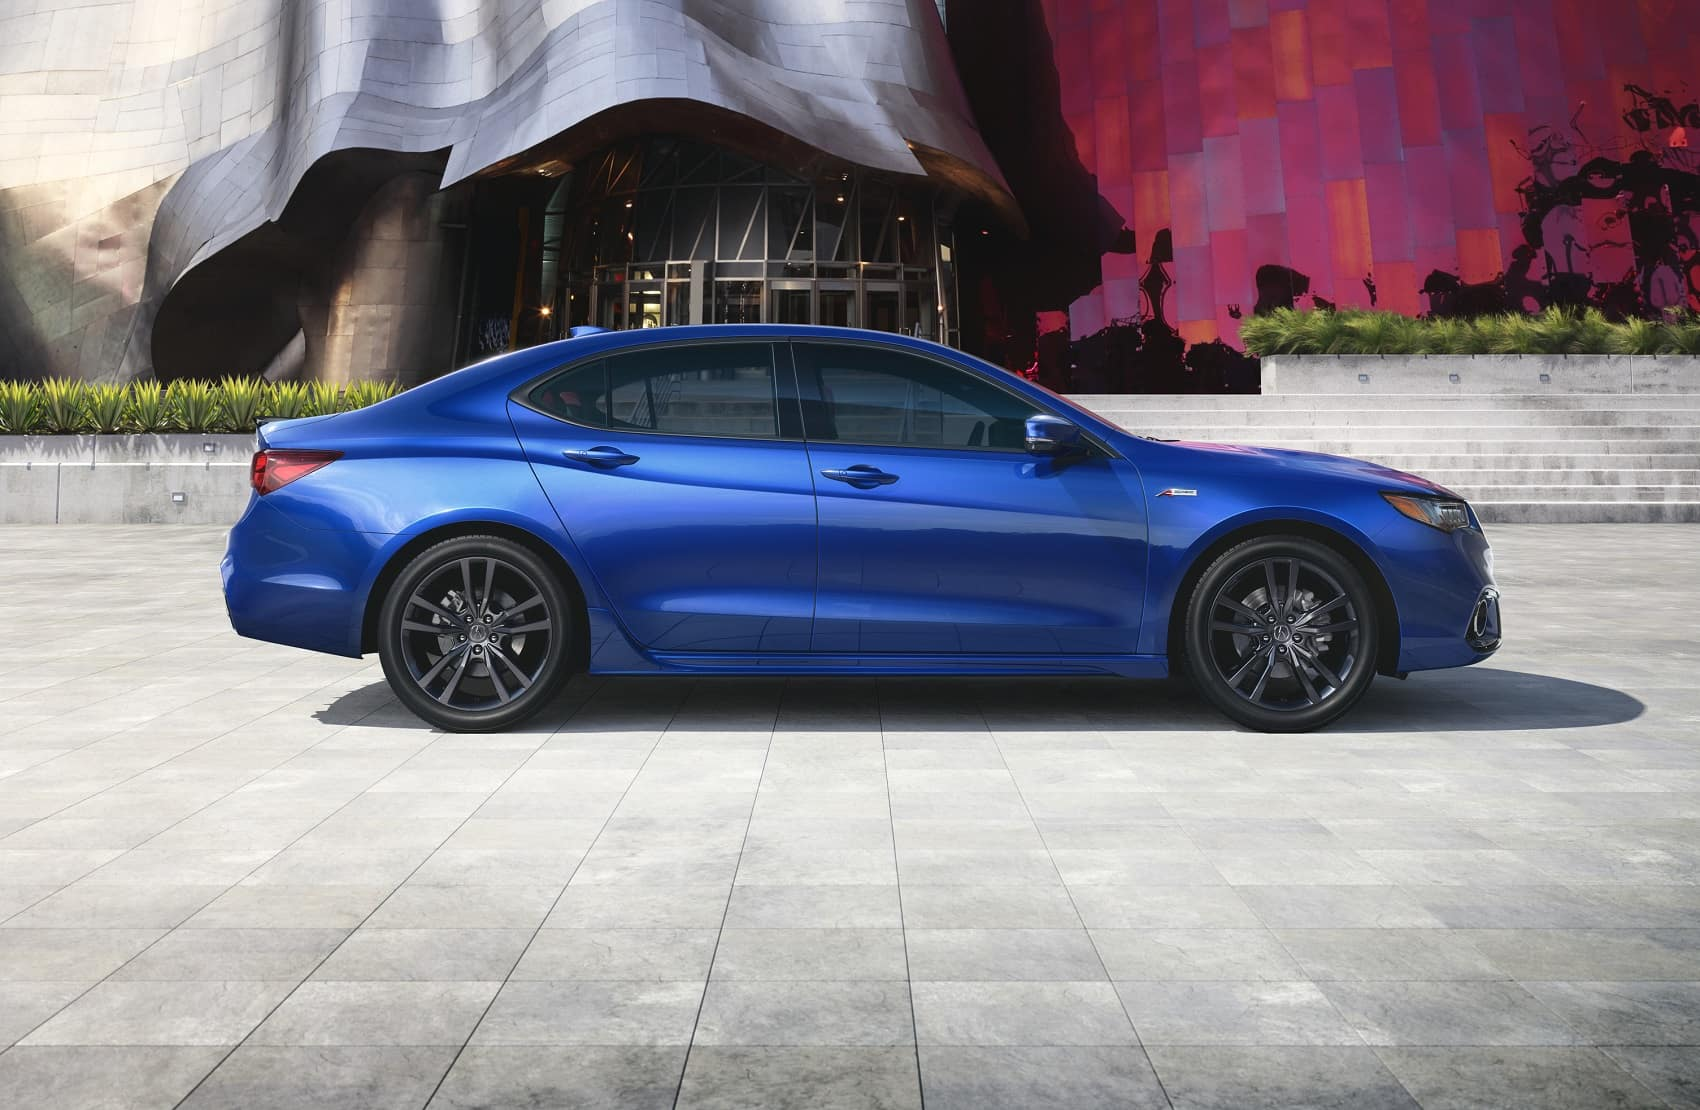 2019 Acura TLX Safety Features